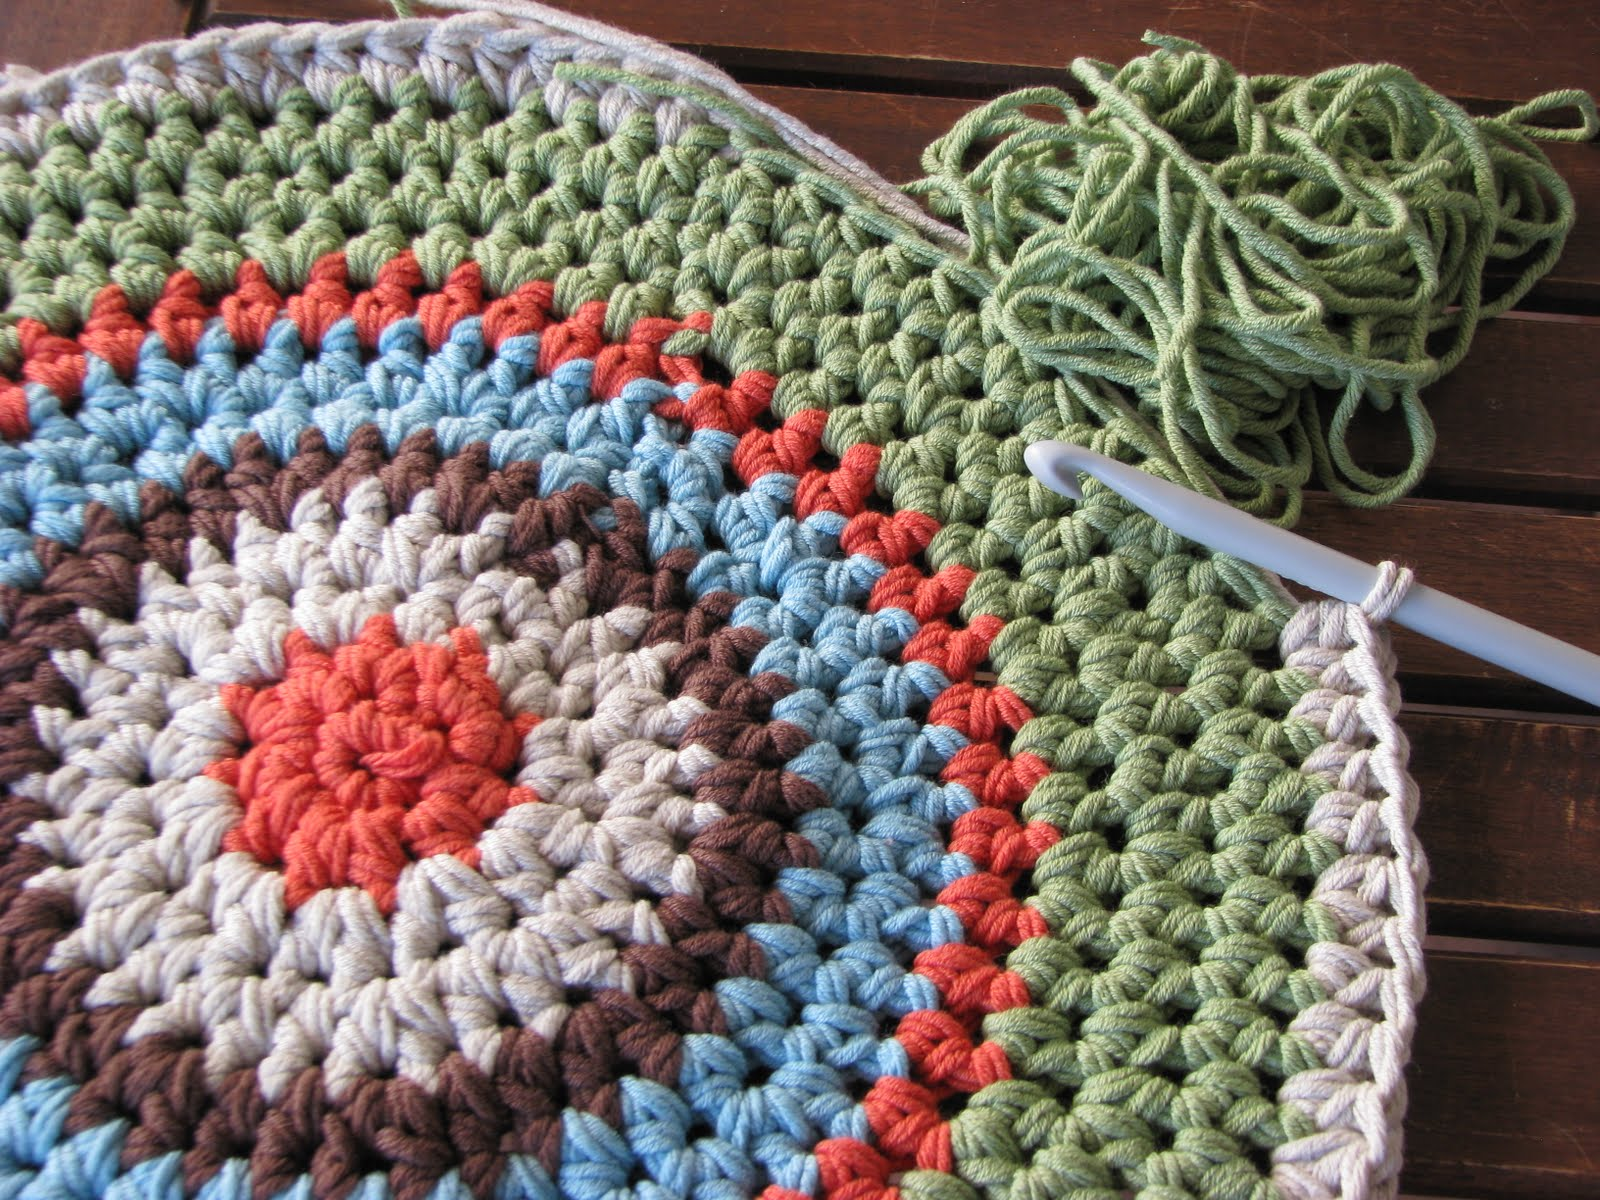 Crochet Patterns And Yarn : CROCHET YARN RUG PATTERN - Crochet Club